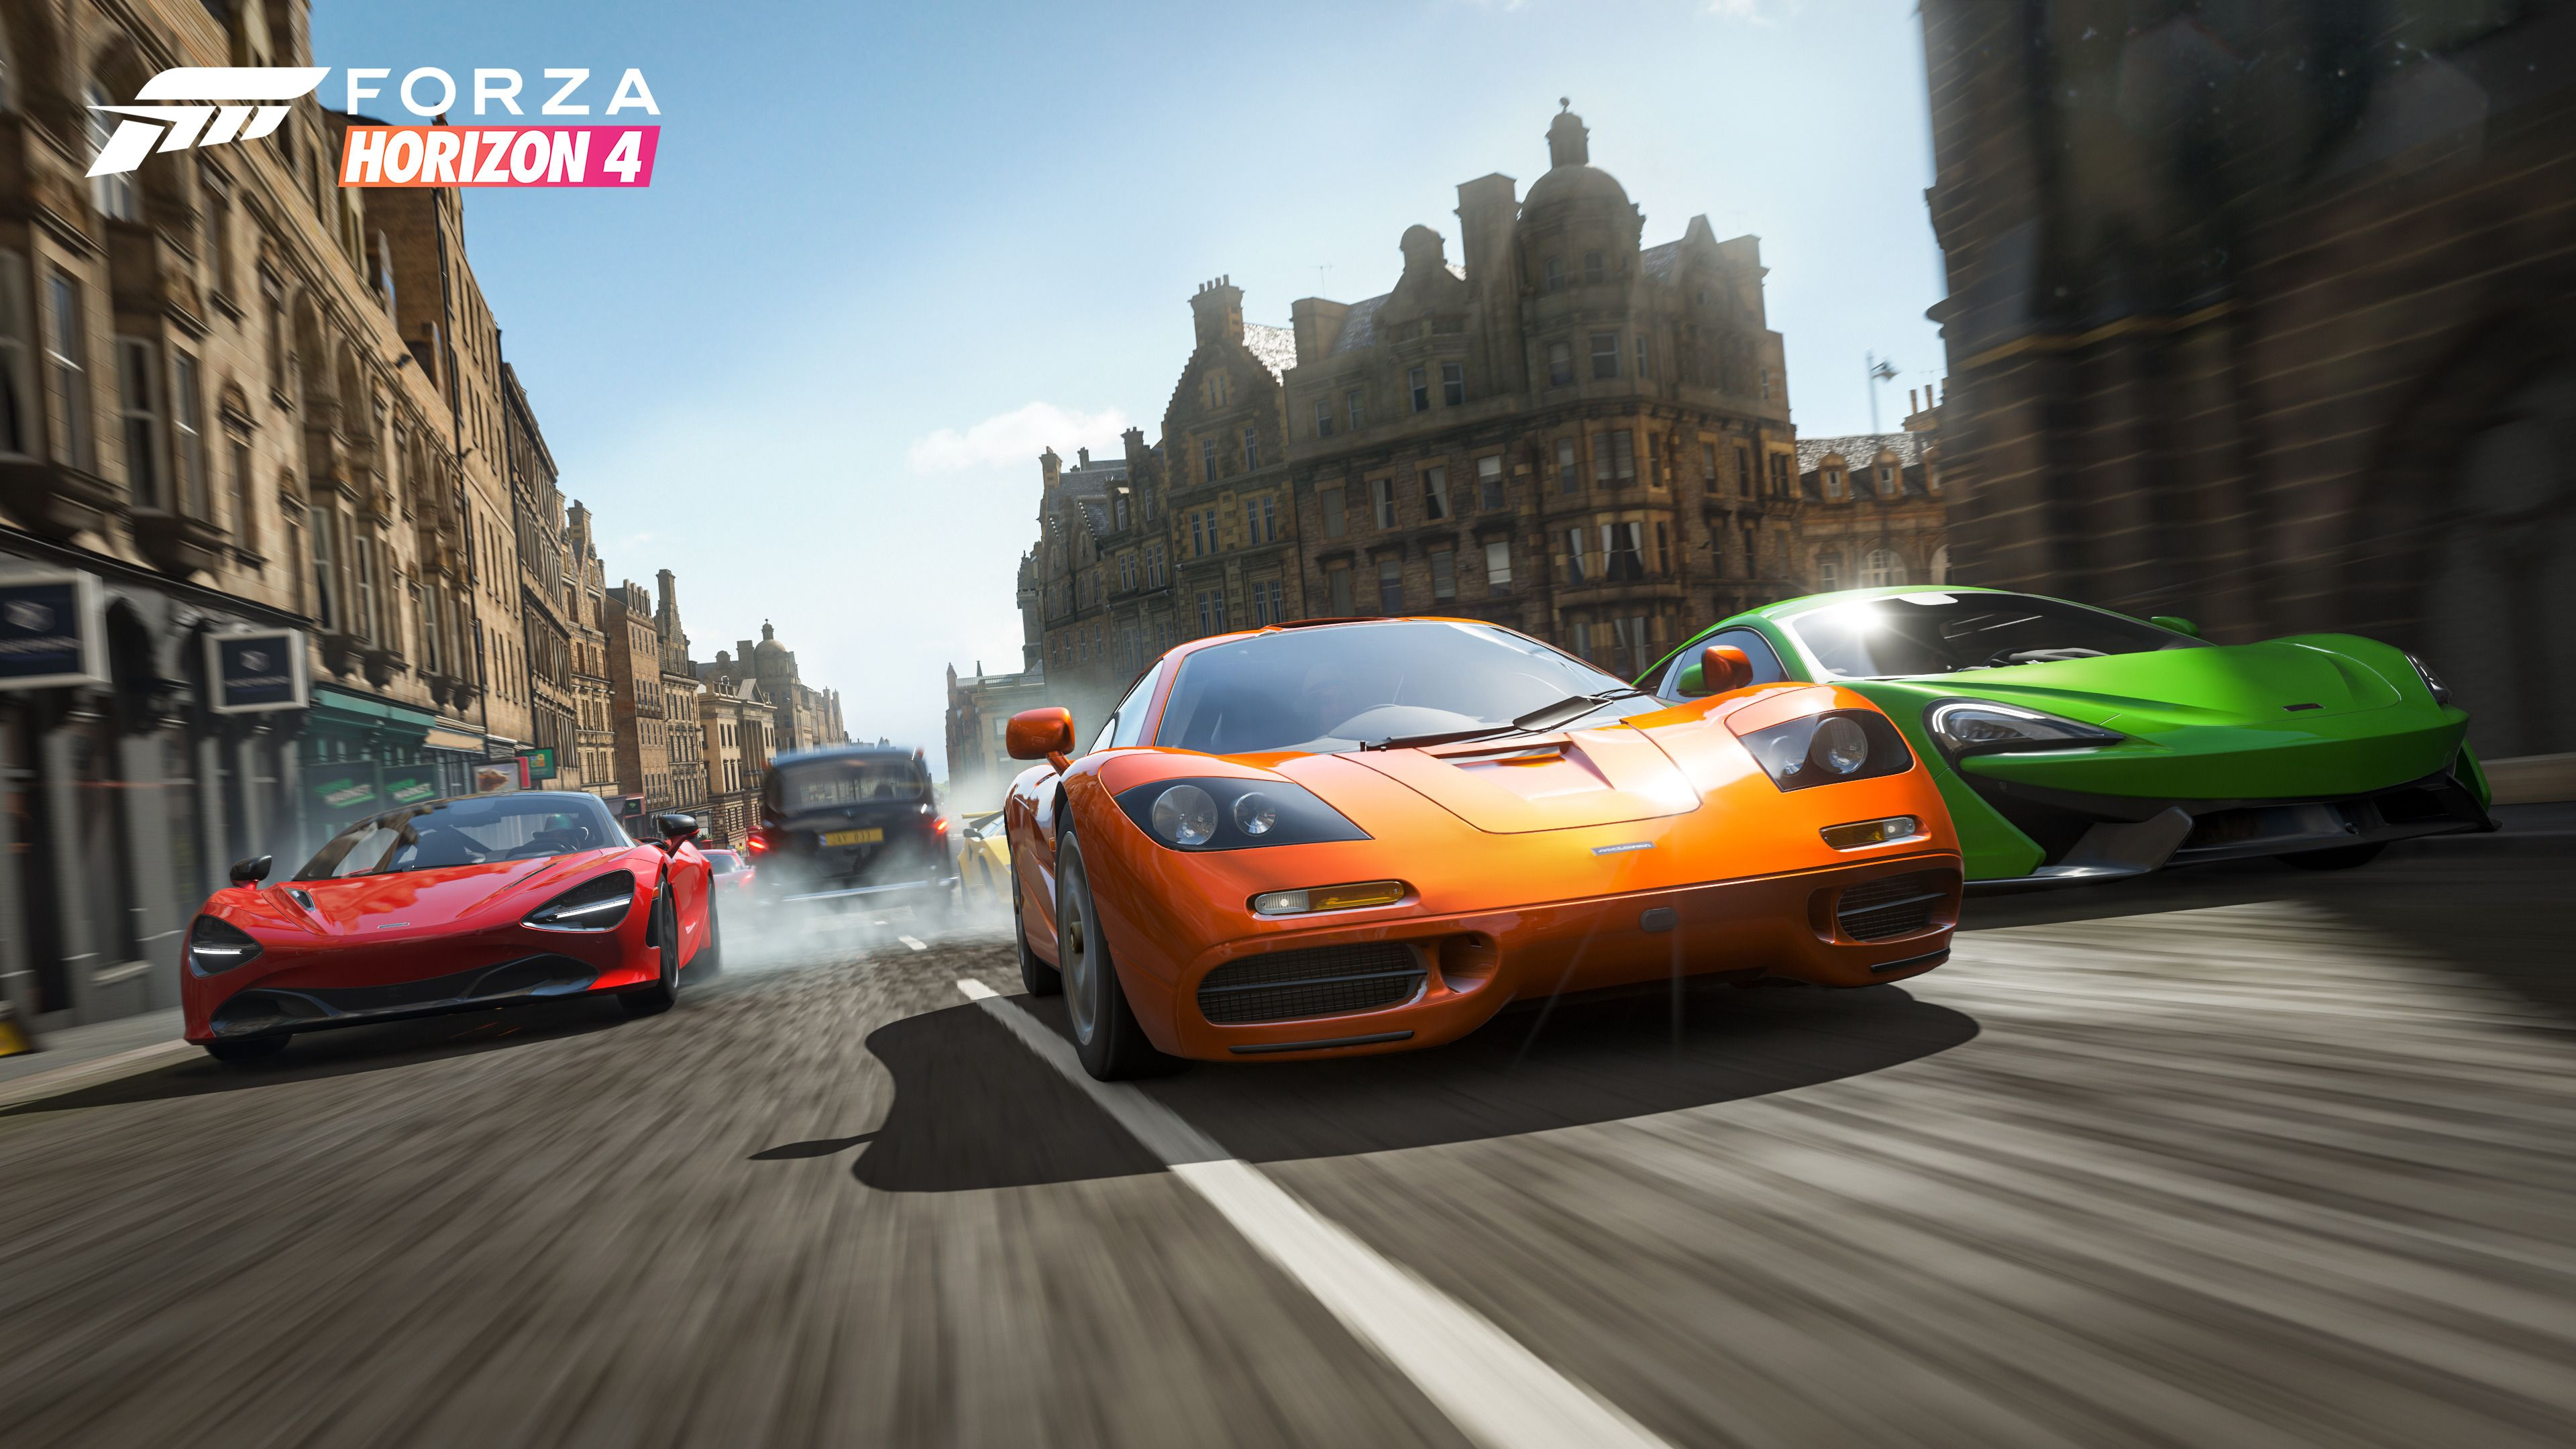 Forza Horizon 4 Street Racing 4k Hd Wallpapers Games Wallpapers Forza Wallpapers Forza Horizon 4 Wallpapers 4k Wallpape Forza Horizon 4 Forza Horizon Forza